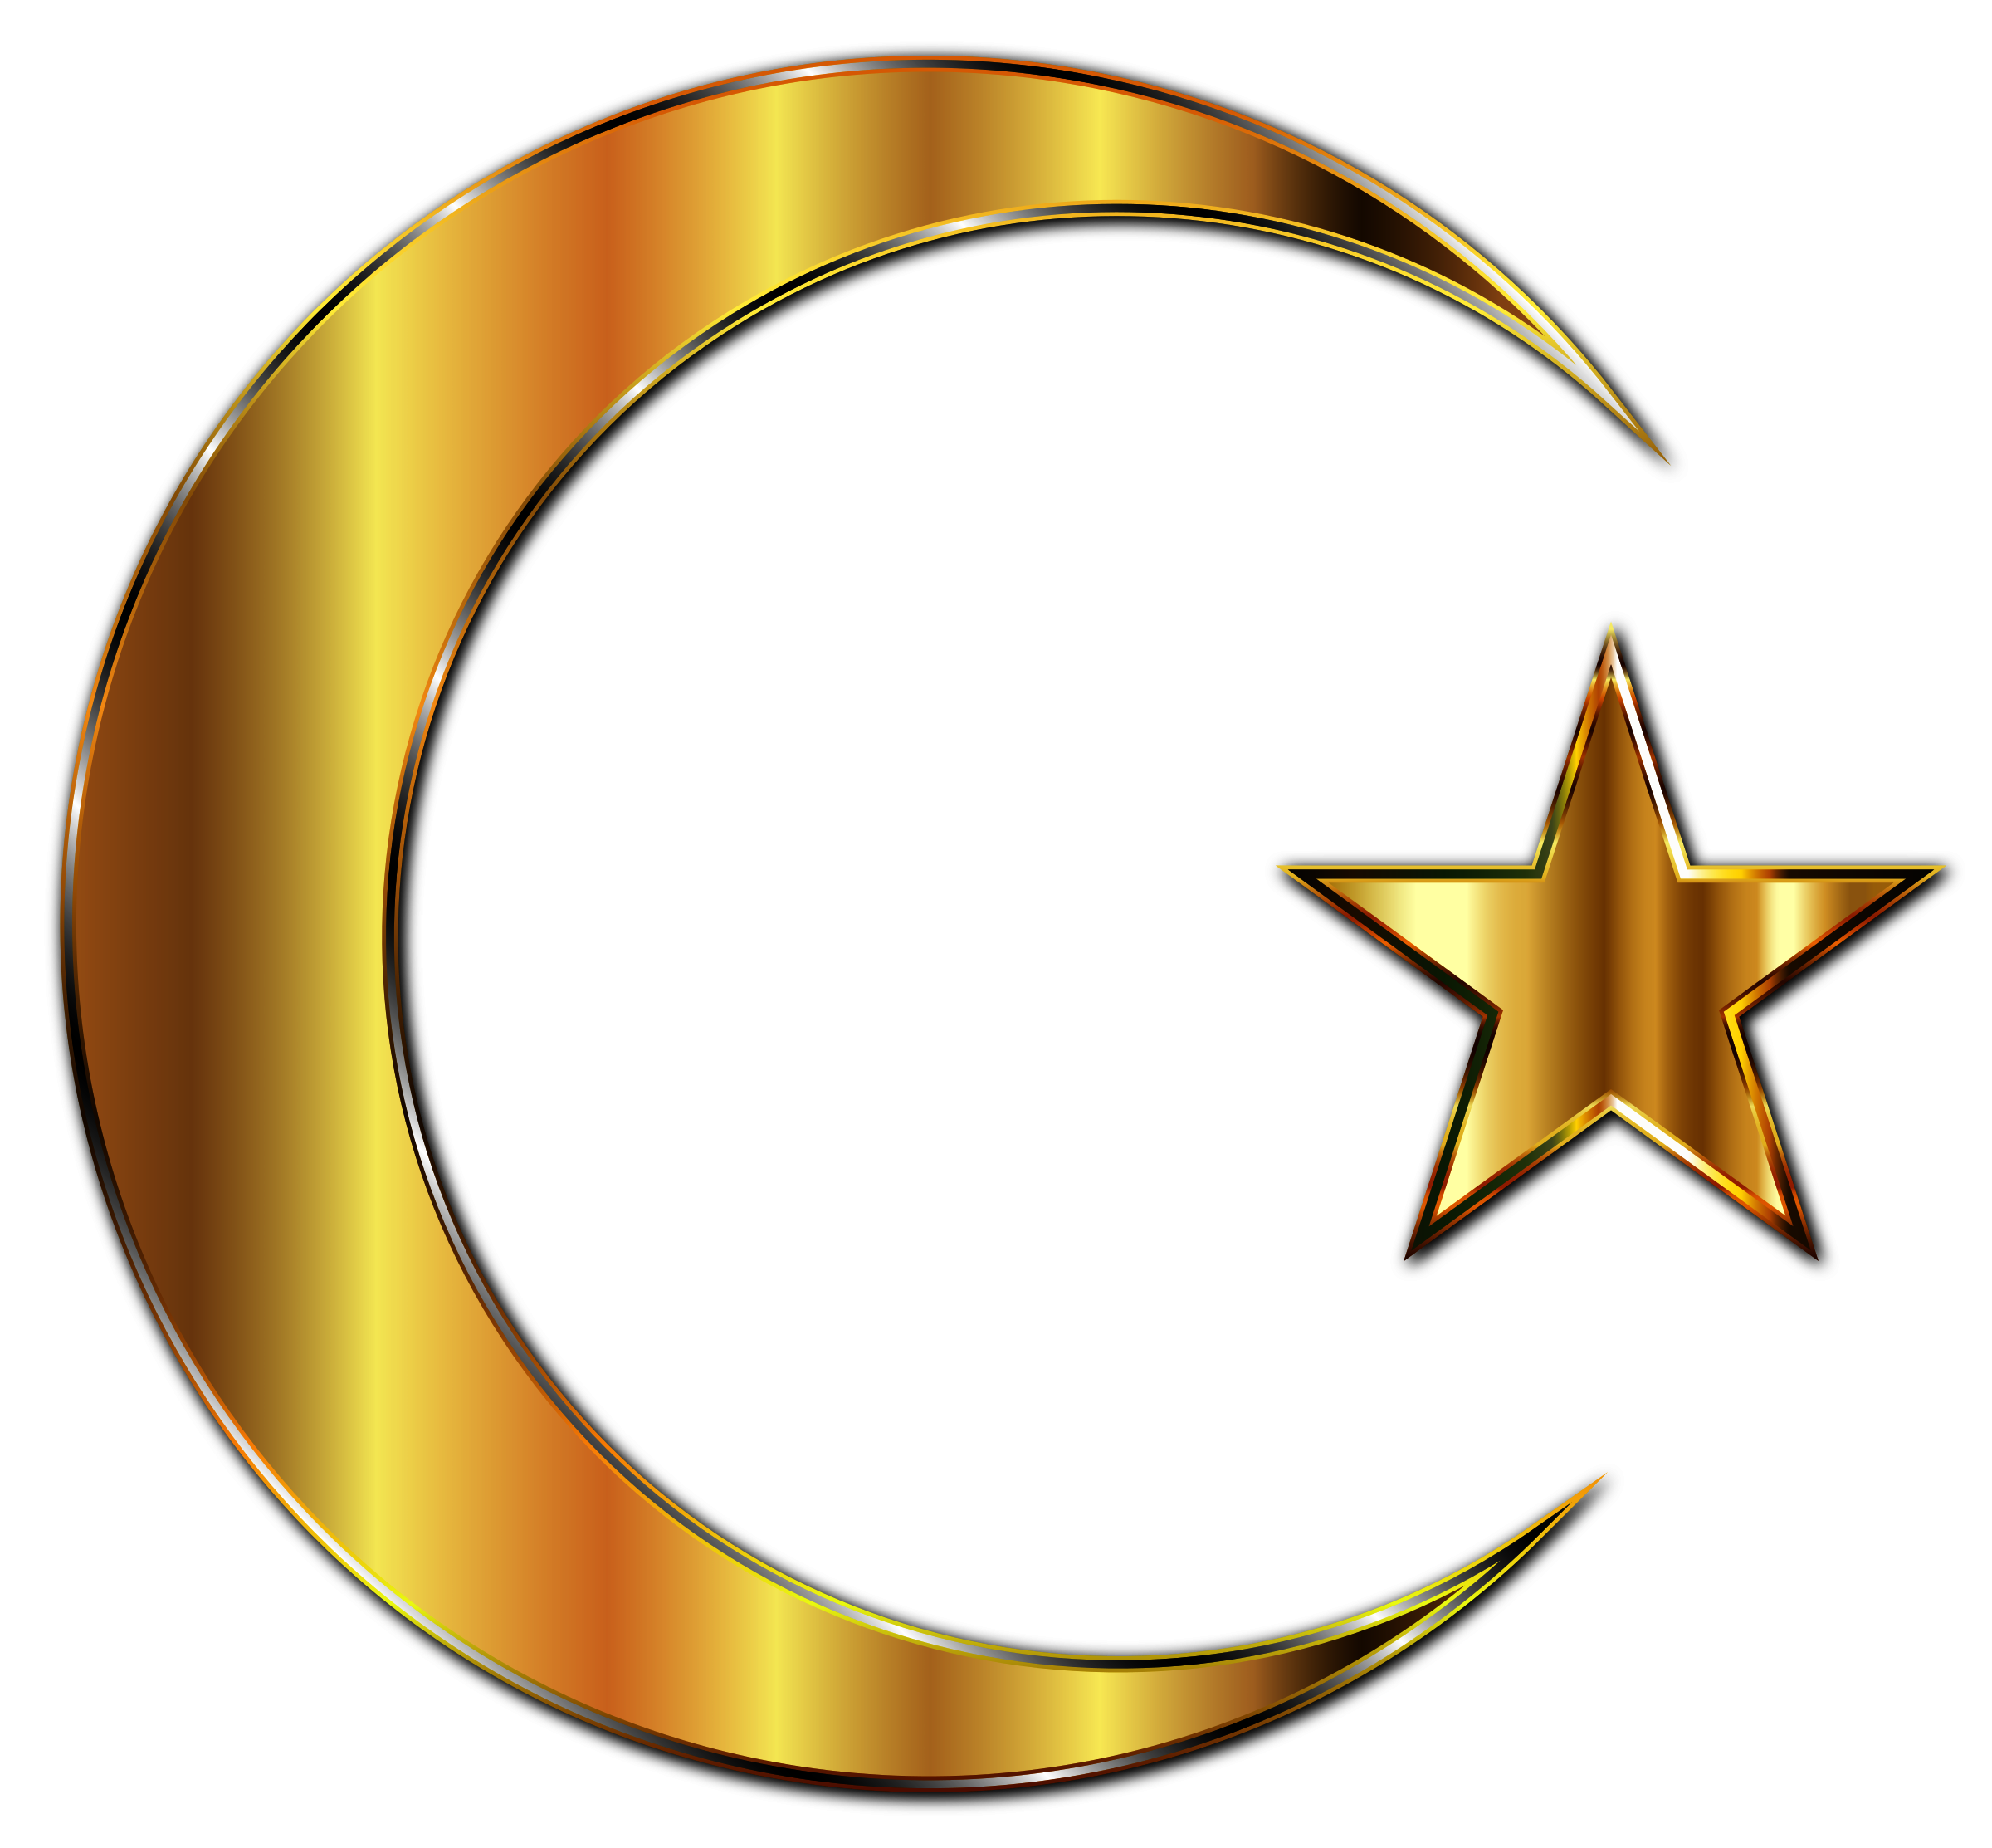 Clipart - Golden Crescent Moon And Star Enhanced 2